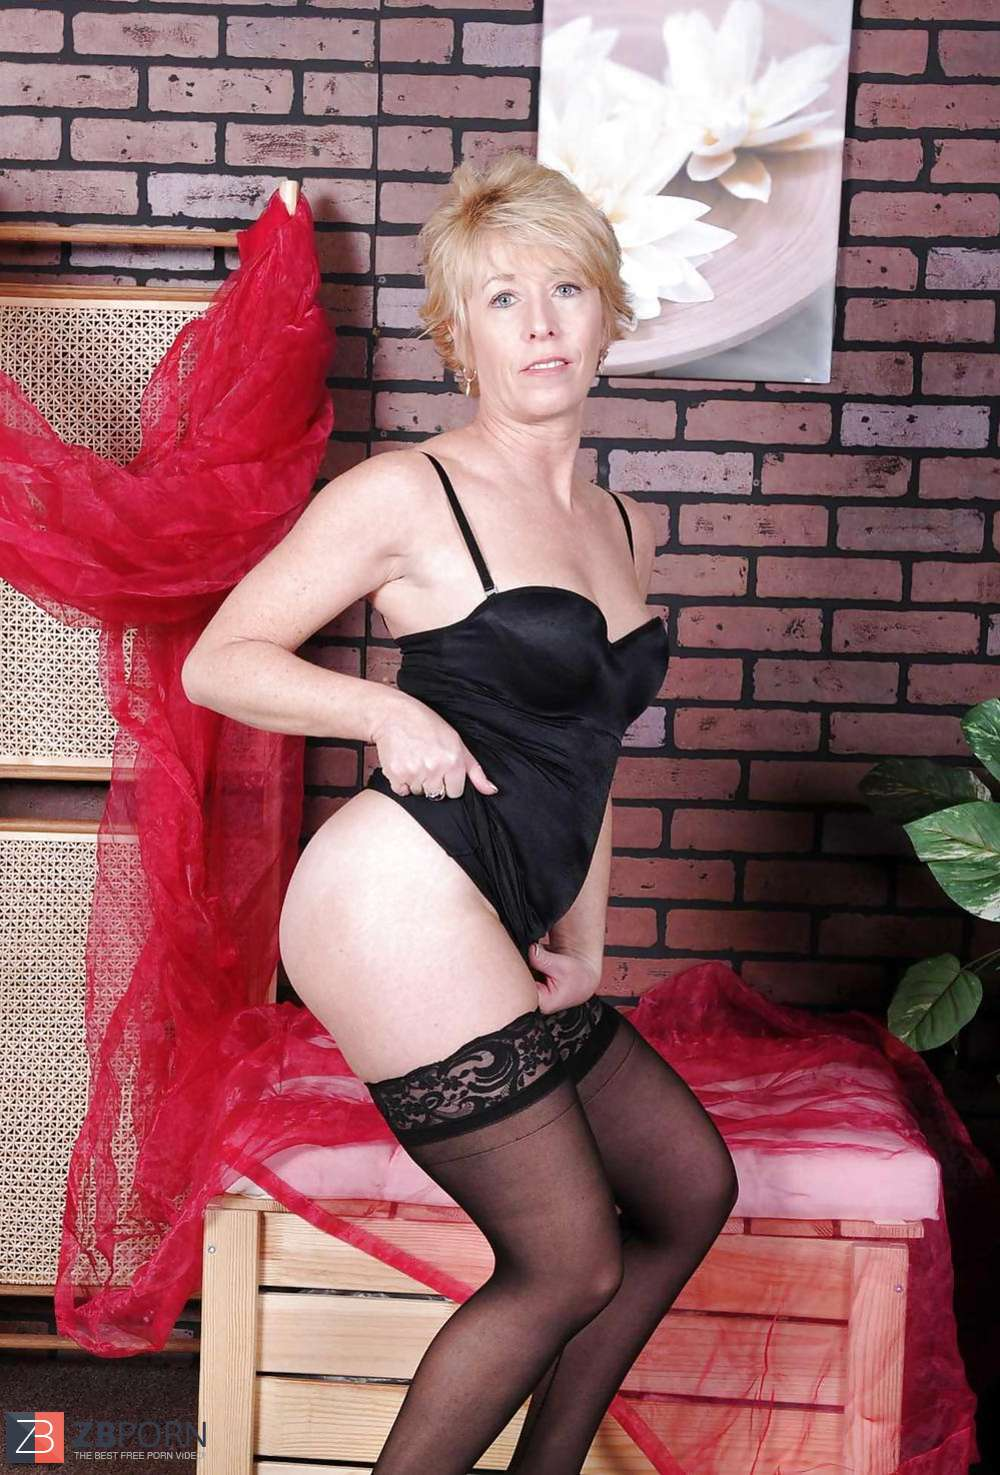 Think, chanel milf mature the